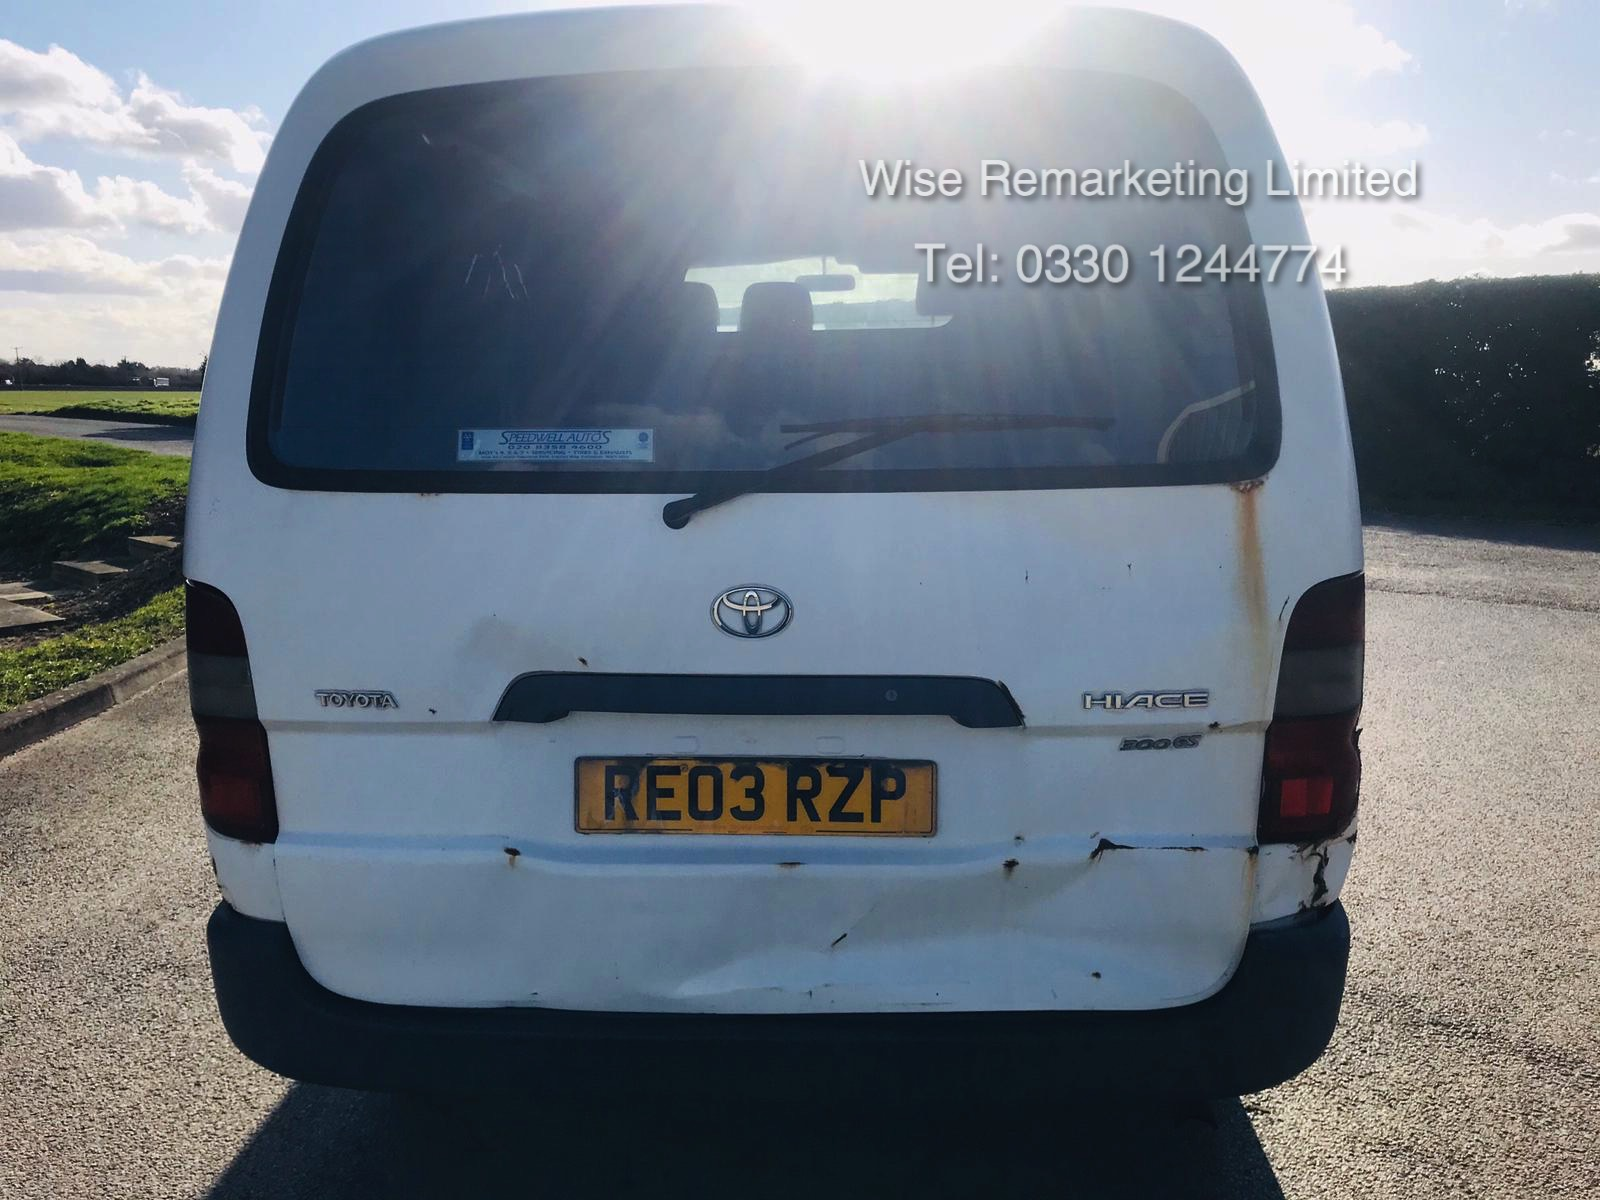 Toyota Hiace 300 GS 2.5 D4D - 2003 03 Reg - 1 Keeper From New - 3 Seater - Roof Rack - Image 5 of 15